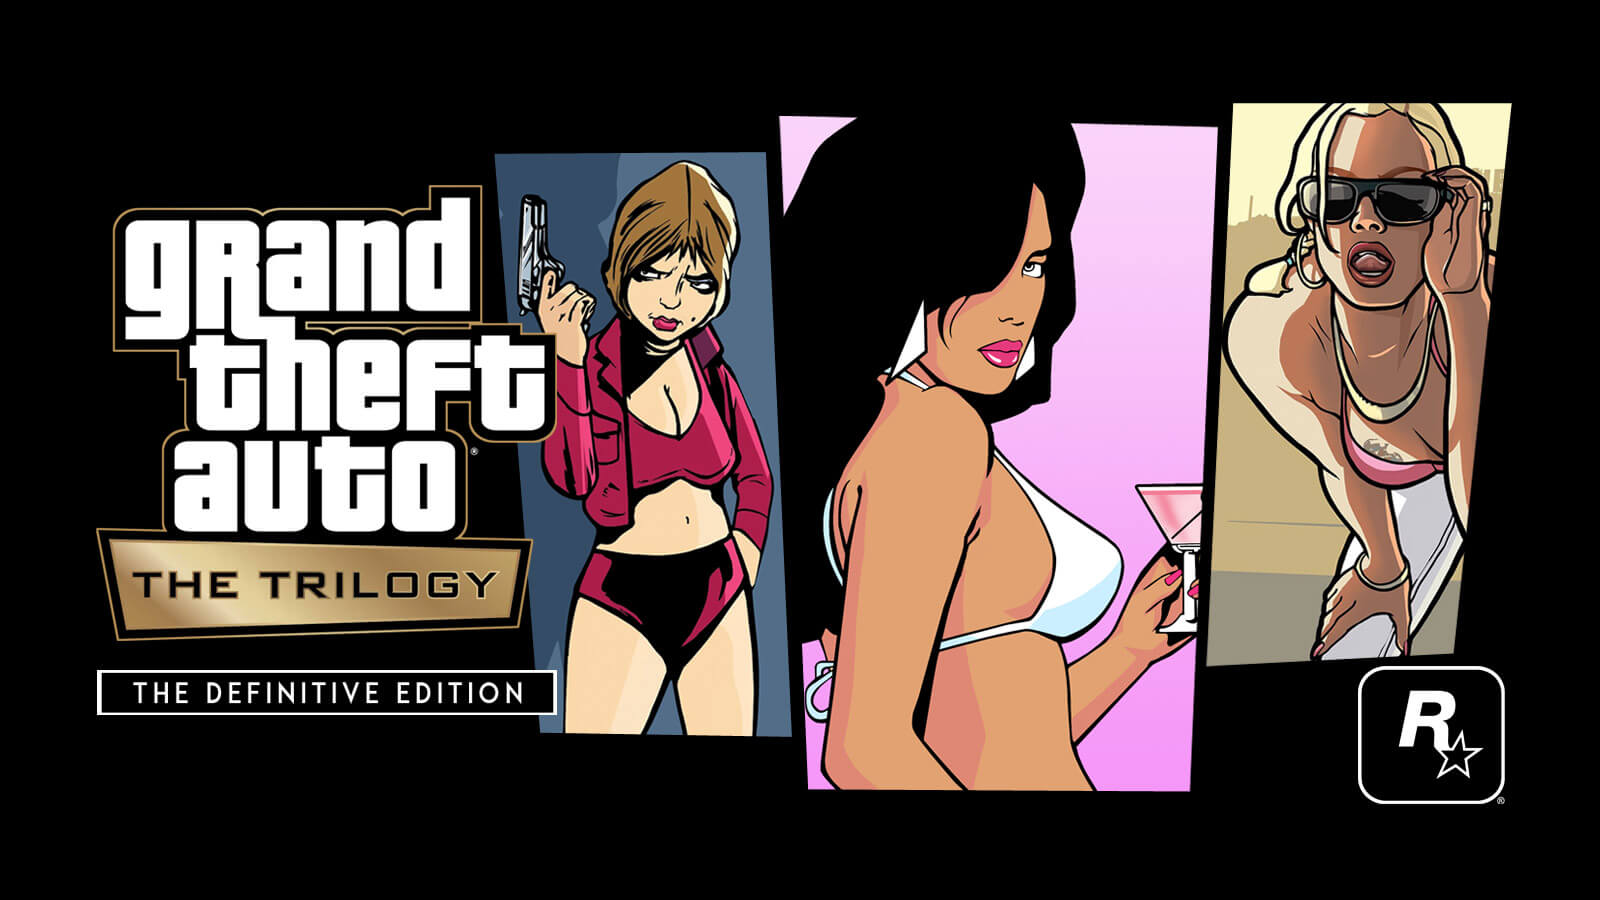 Grand Theft Auto: The Trilogy – The Definitive Edition Announced